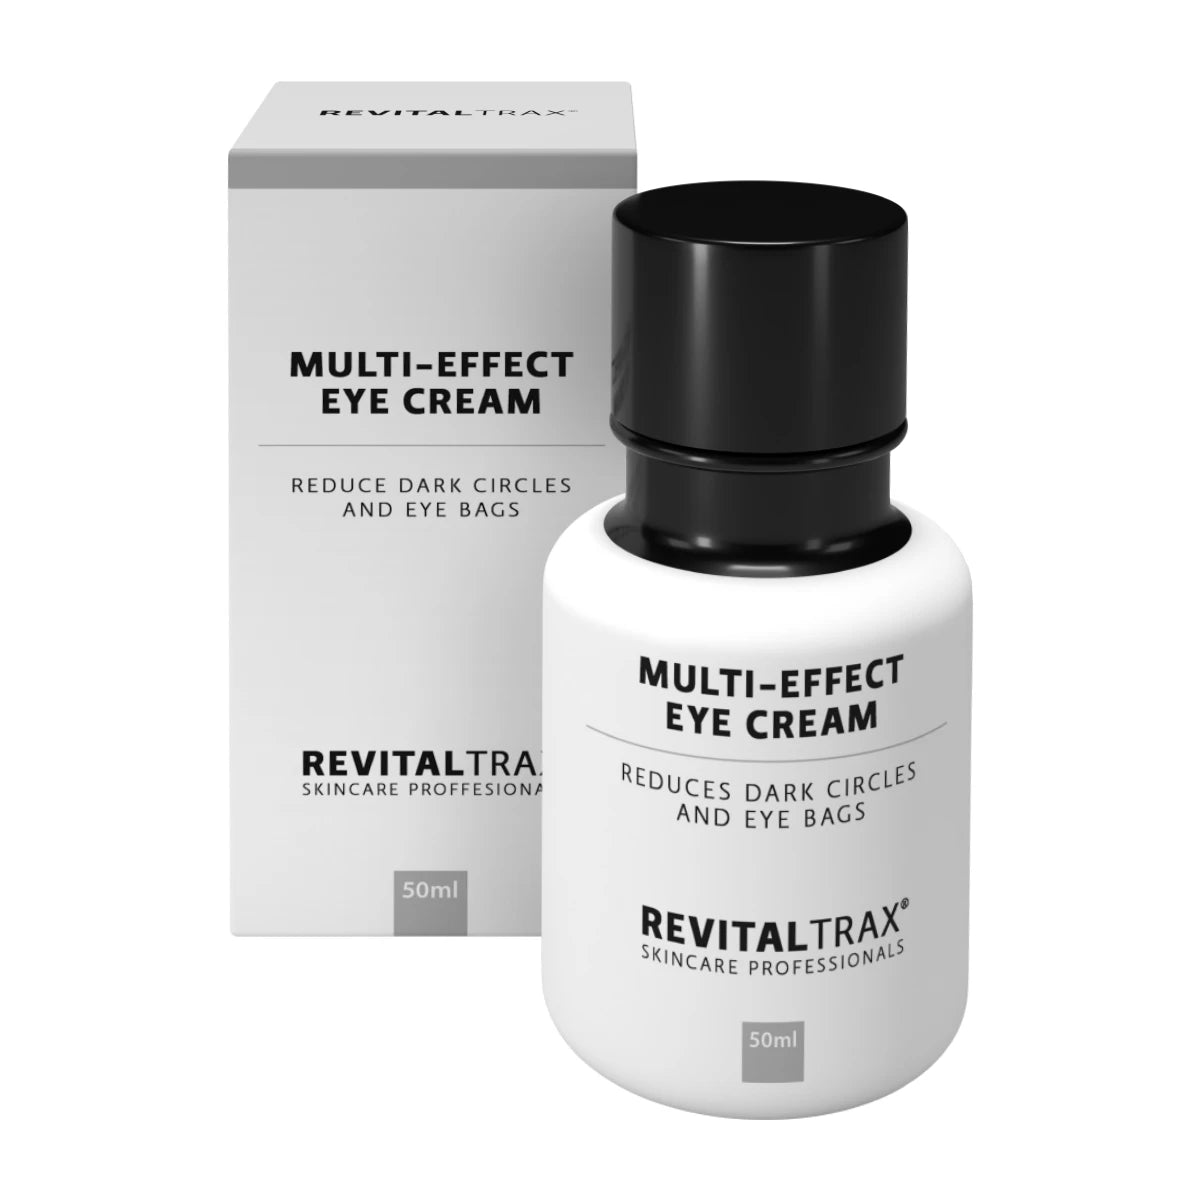 RevitalTrax Multi-Eye Effect Cream. Eye cream to reduce bags and dark circles under the eyes